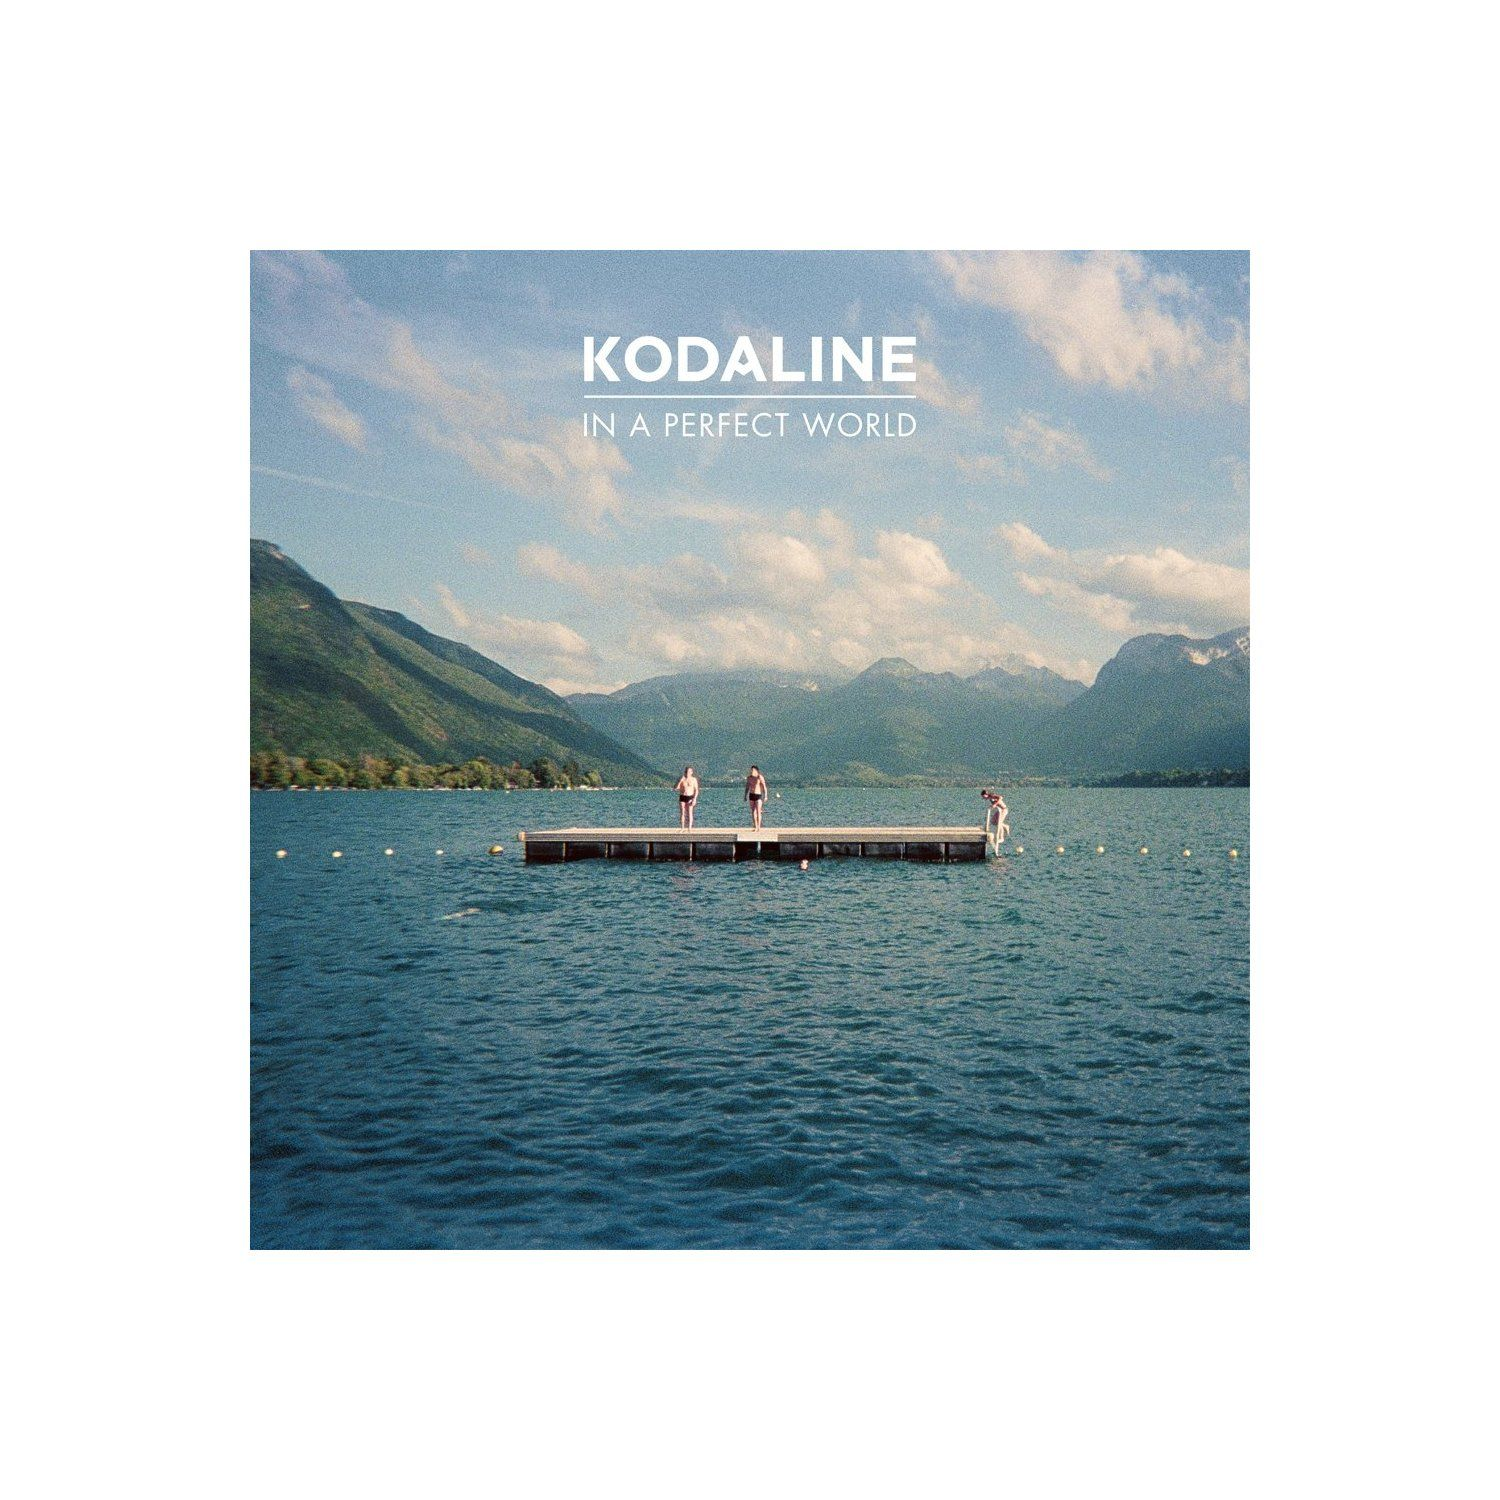 Kodaline In A Perfect World Perfect World Listen To Free Music Perfection